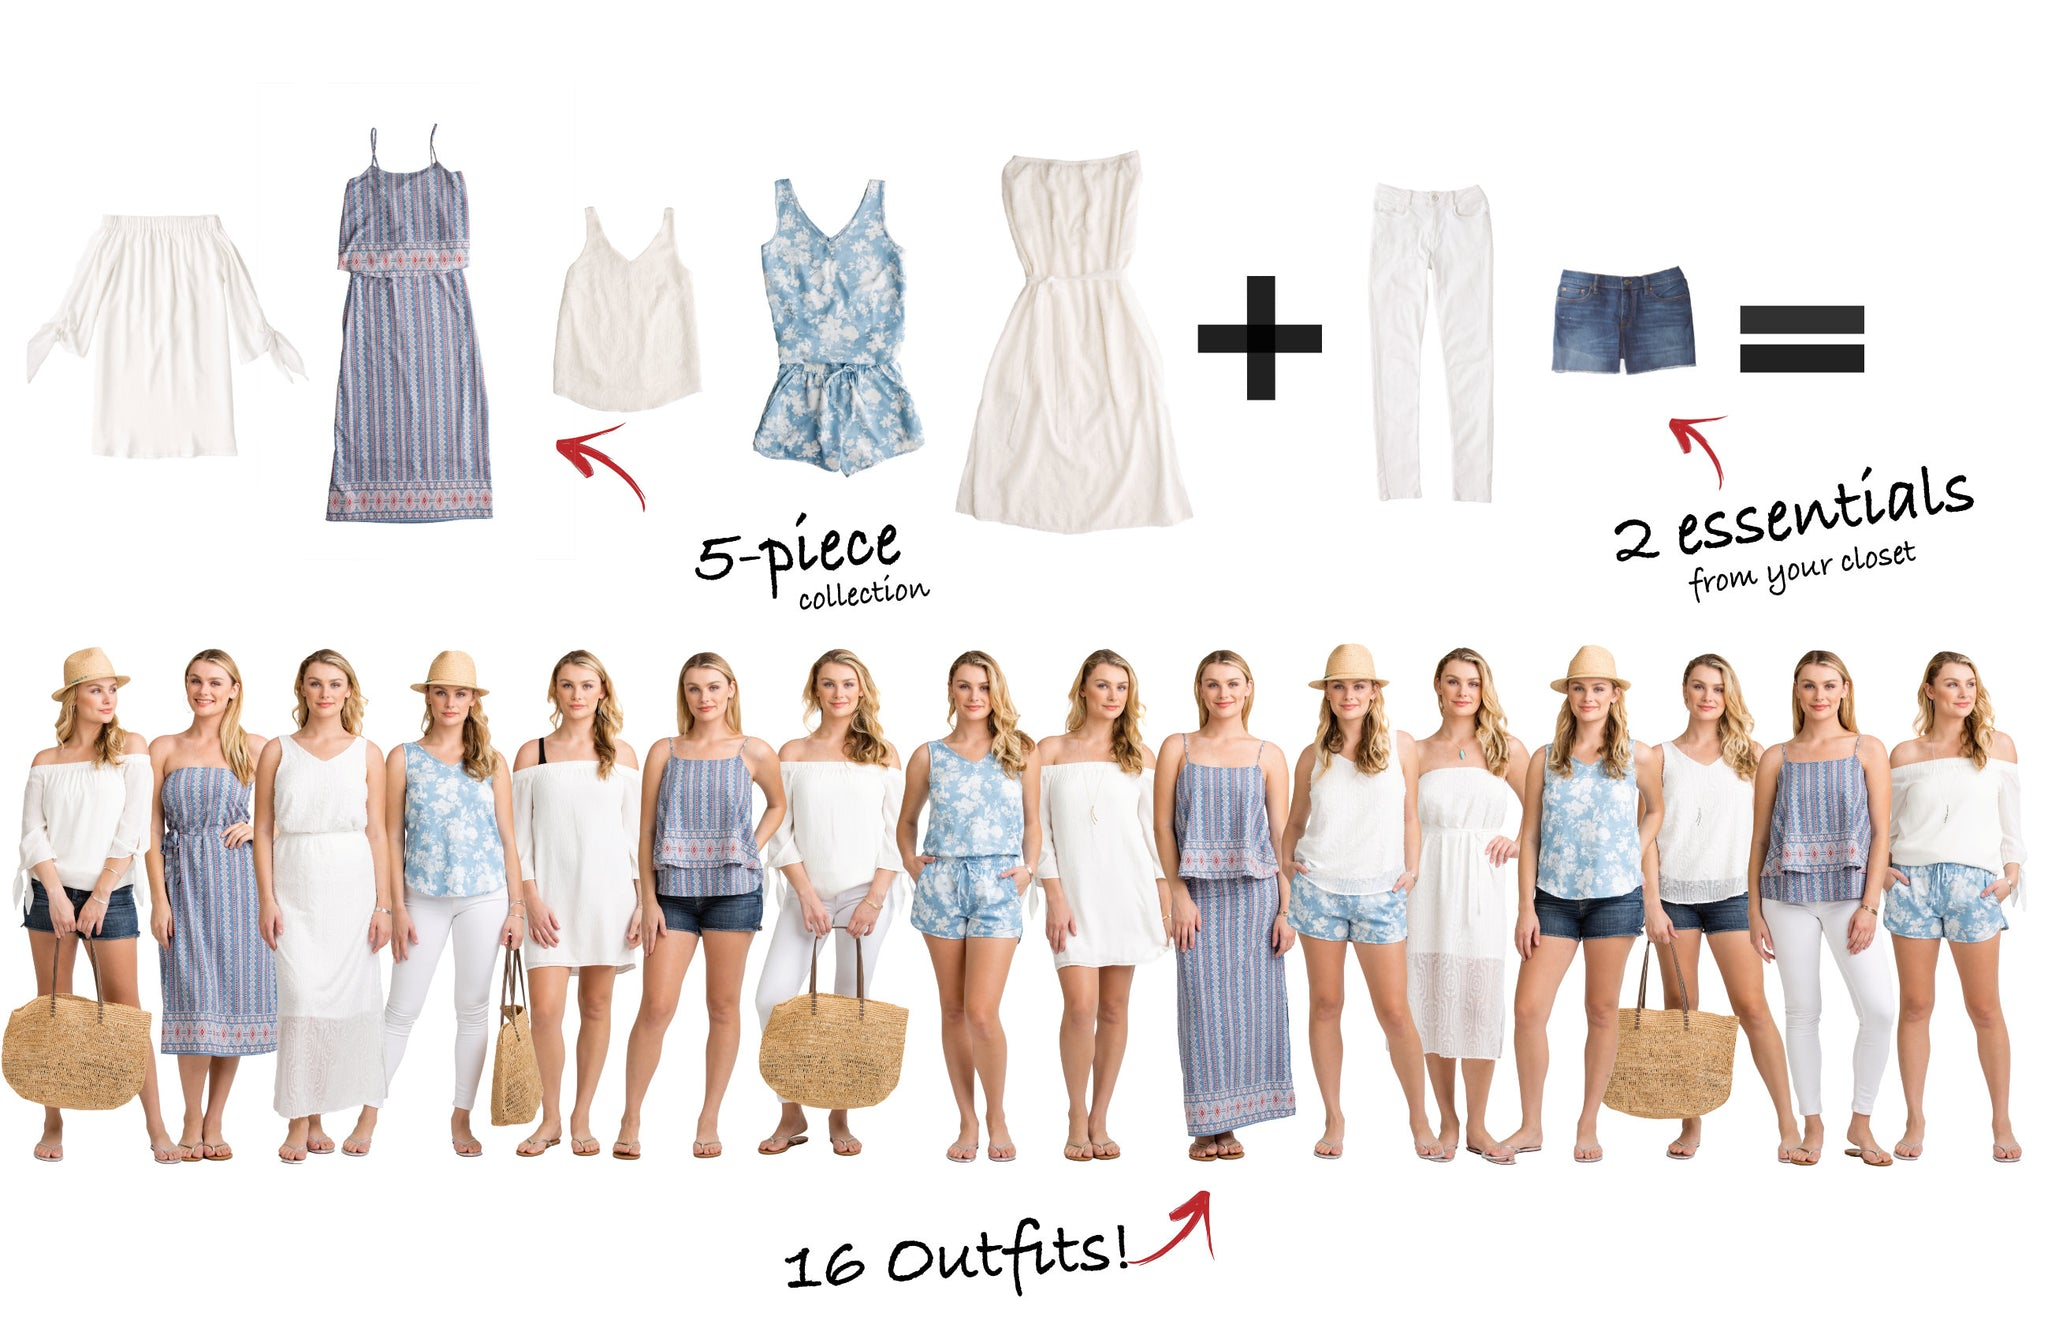 Hanalei Collection: 5 items = 16 outfits